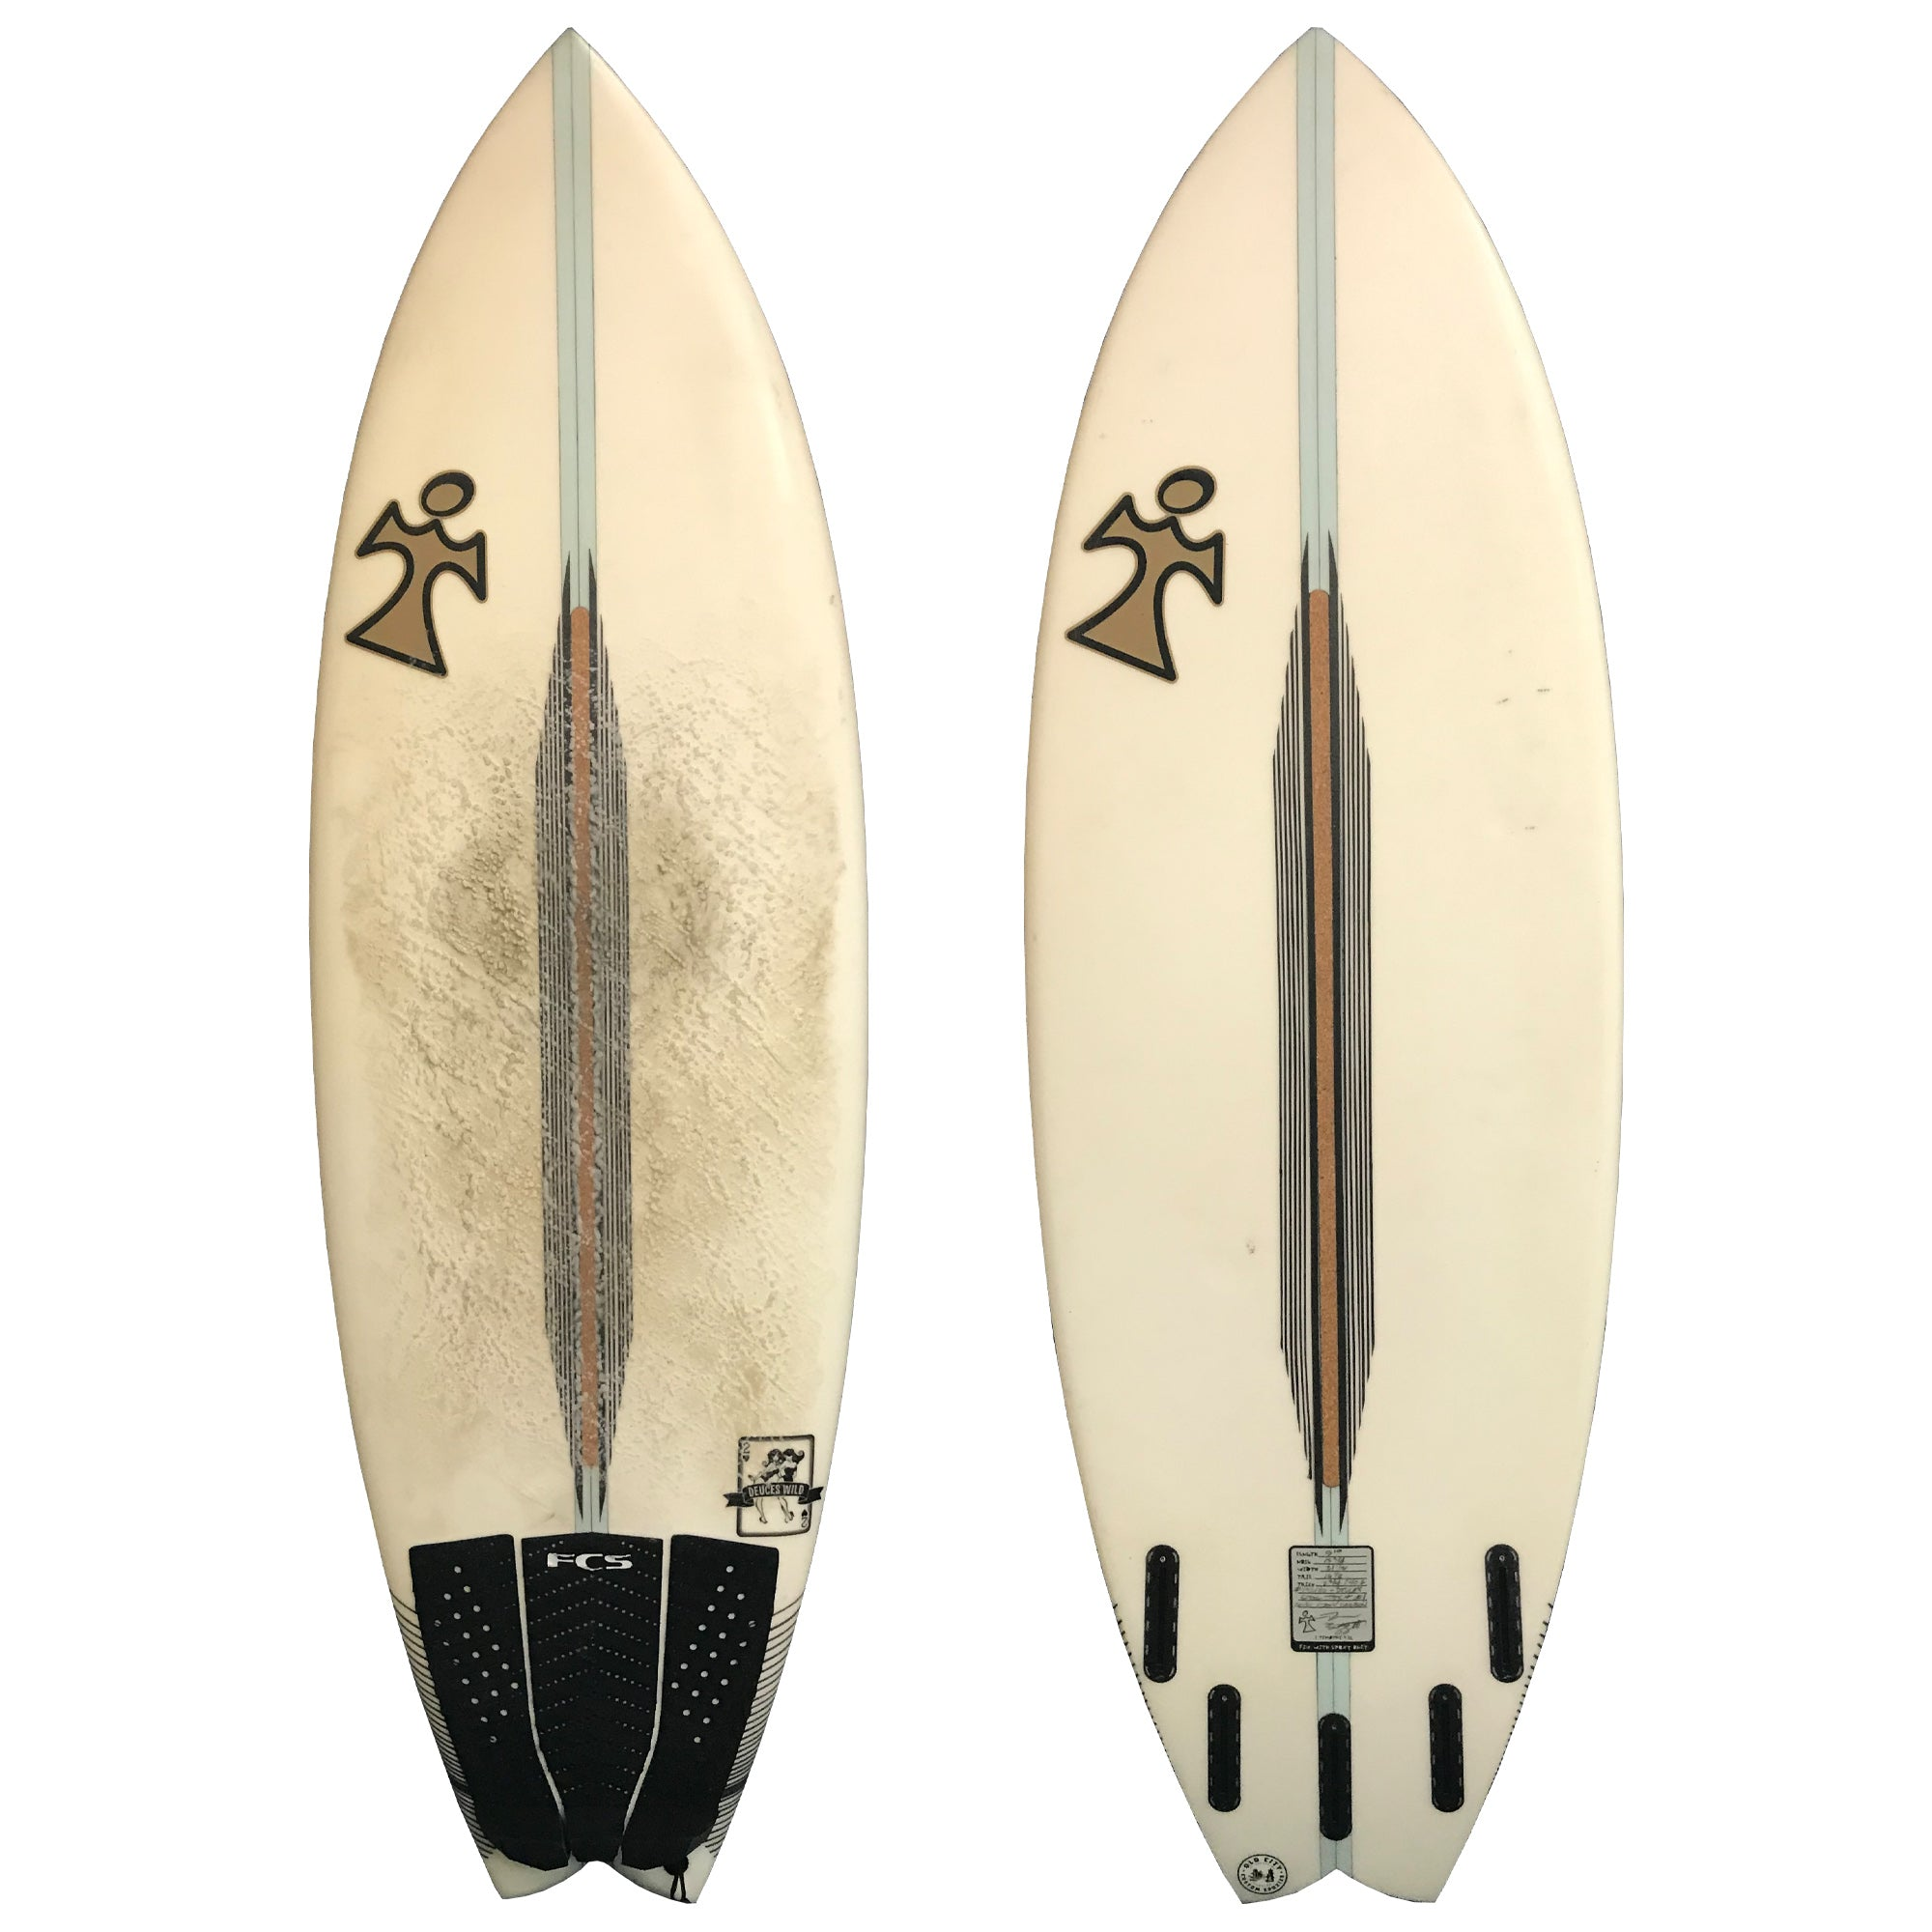 Inspired Surfboards Wild Deuces 5'10 Used Surfboard